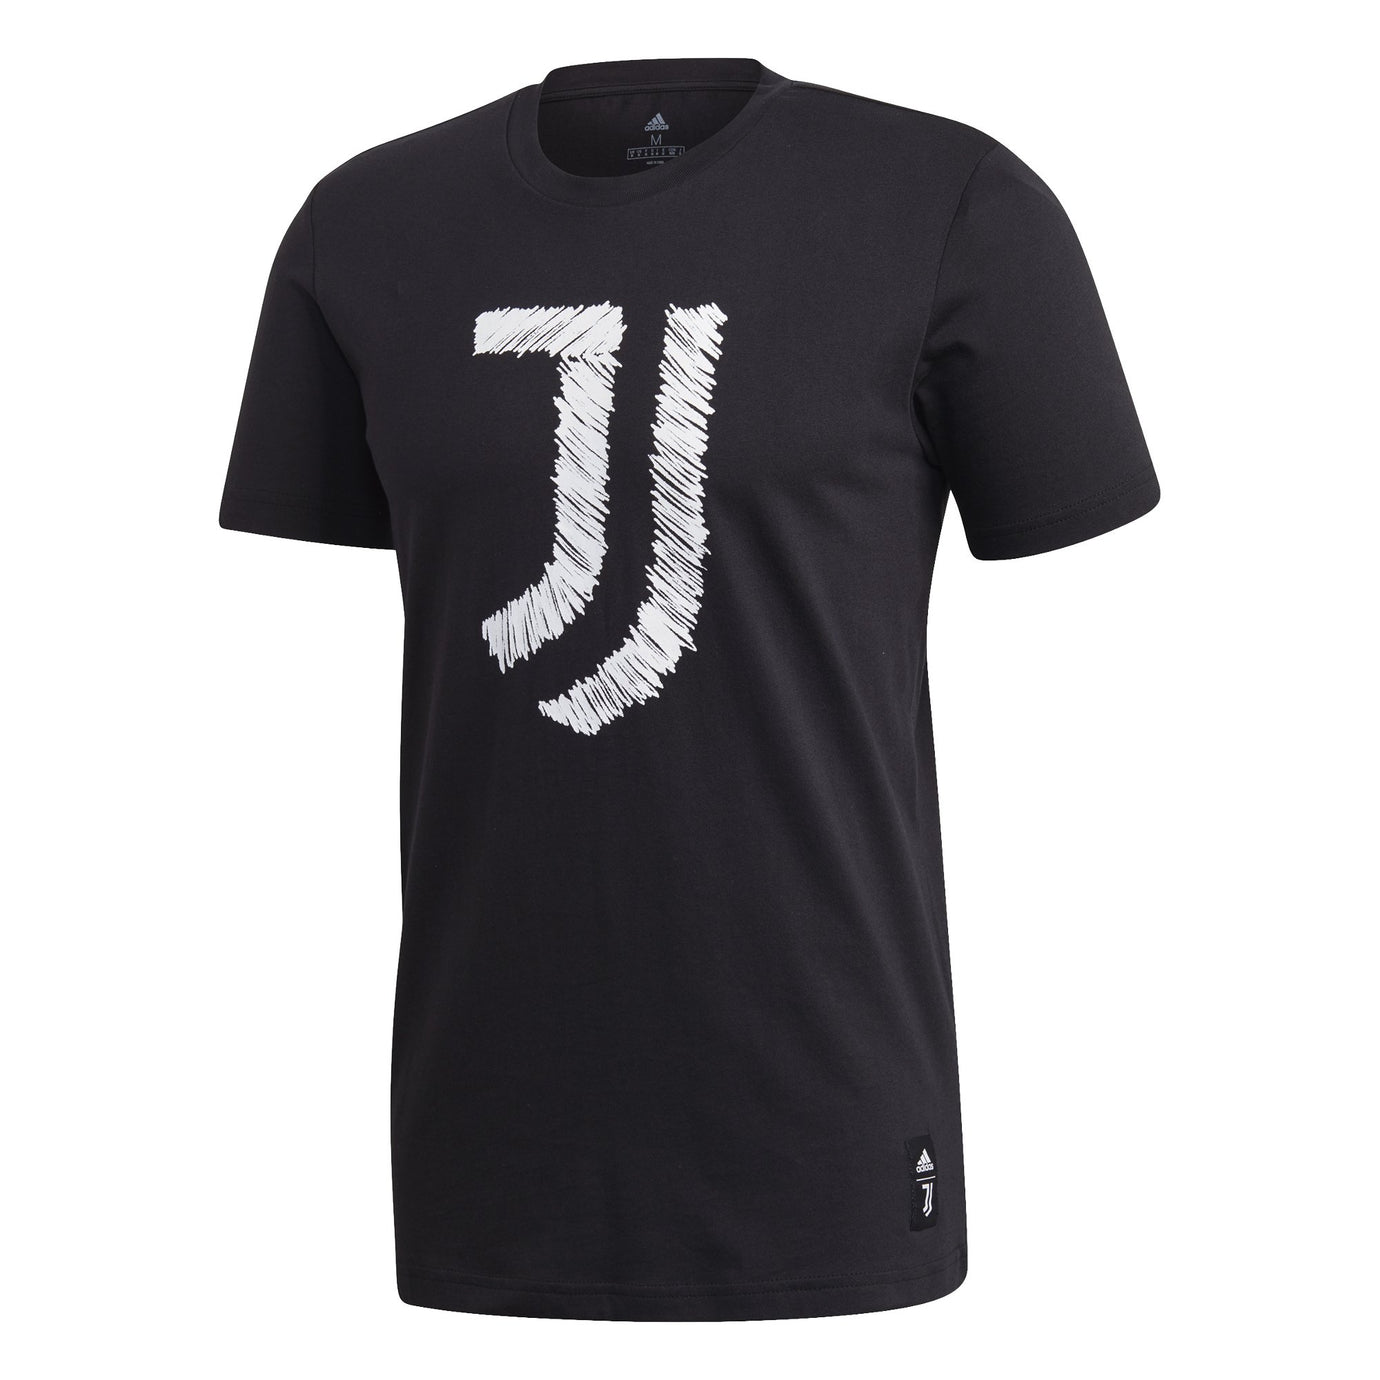 ADI JUVE 20-21 DNA GRAPHIC TEE BLACK/WHITE